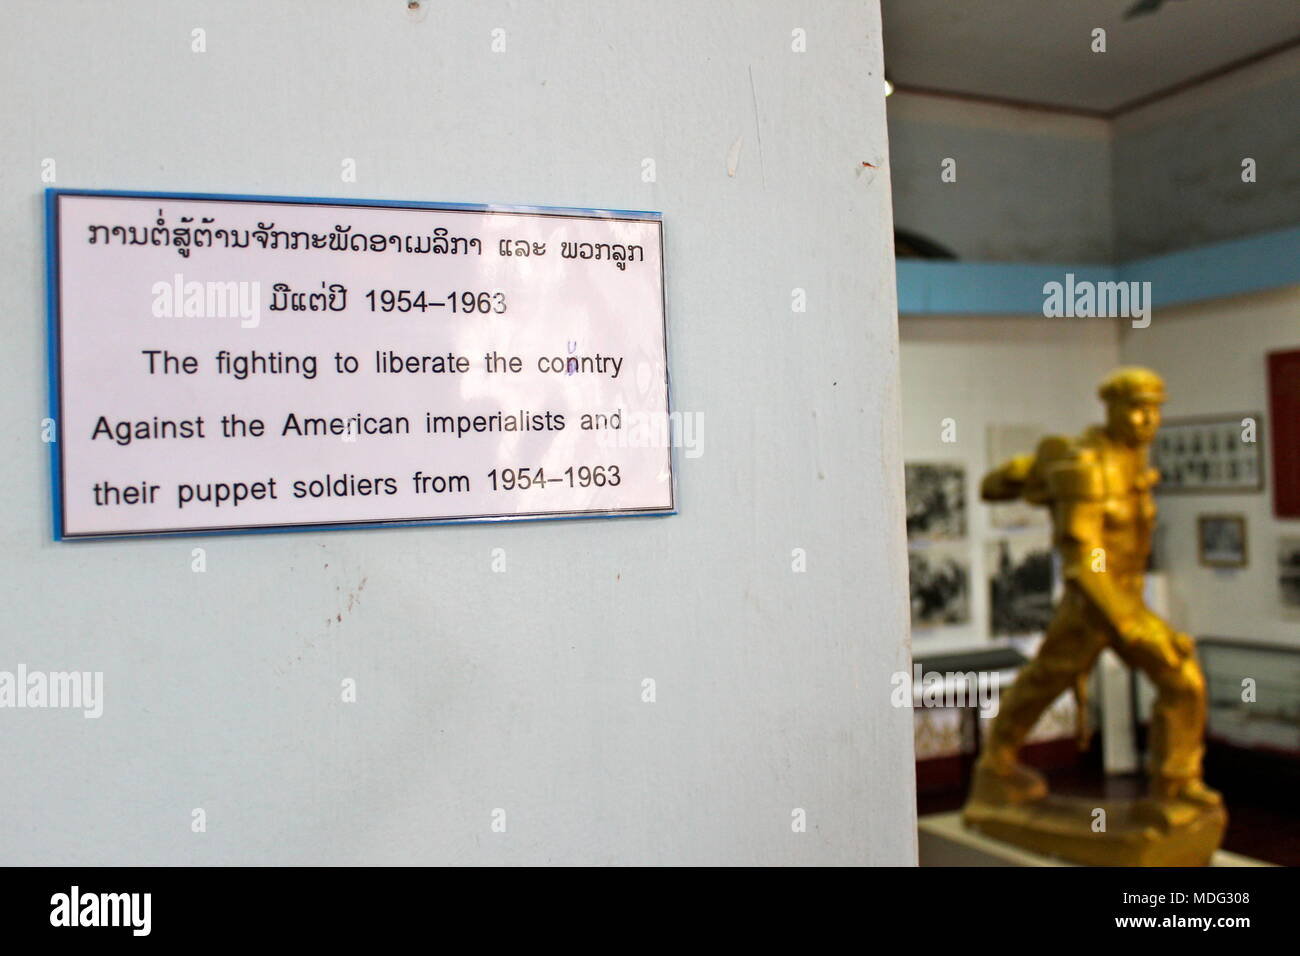 A sign depicting the fight against the American imperialists on display at the Lao National Museum. Vientiane, Laos, 2015. - Stock Image